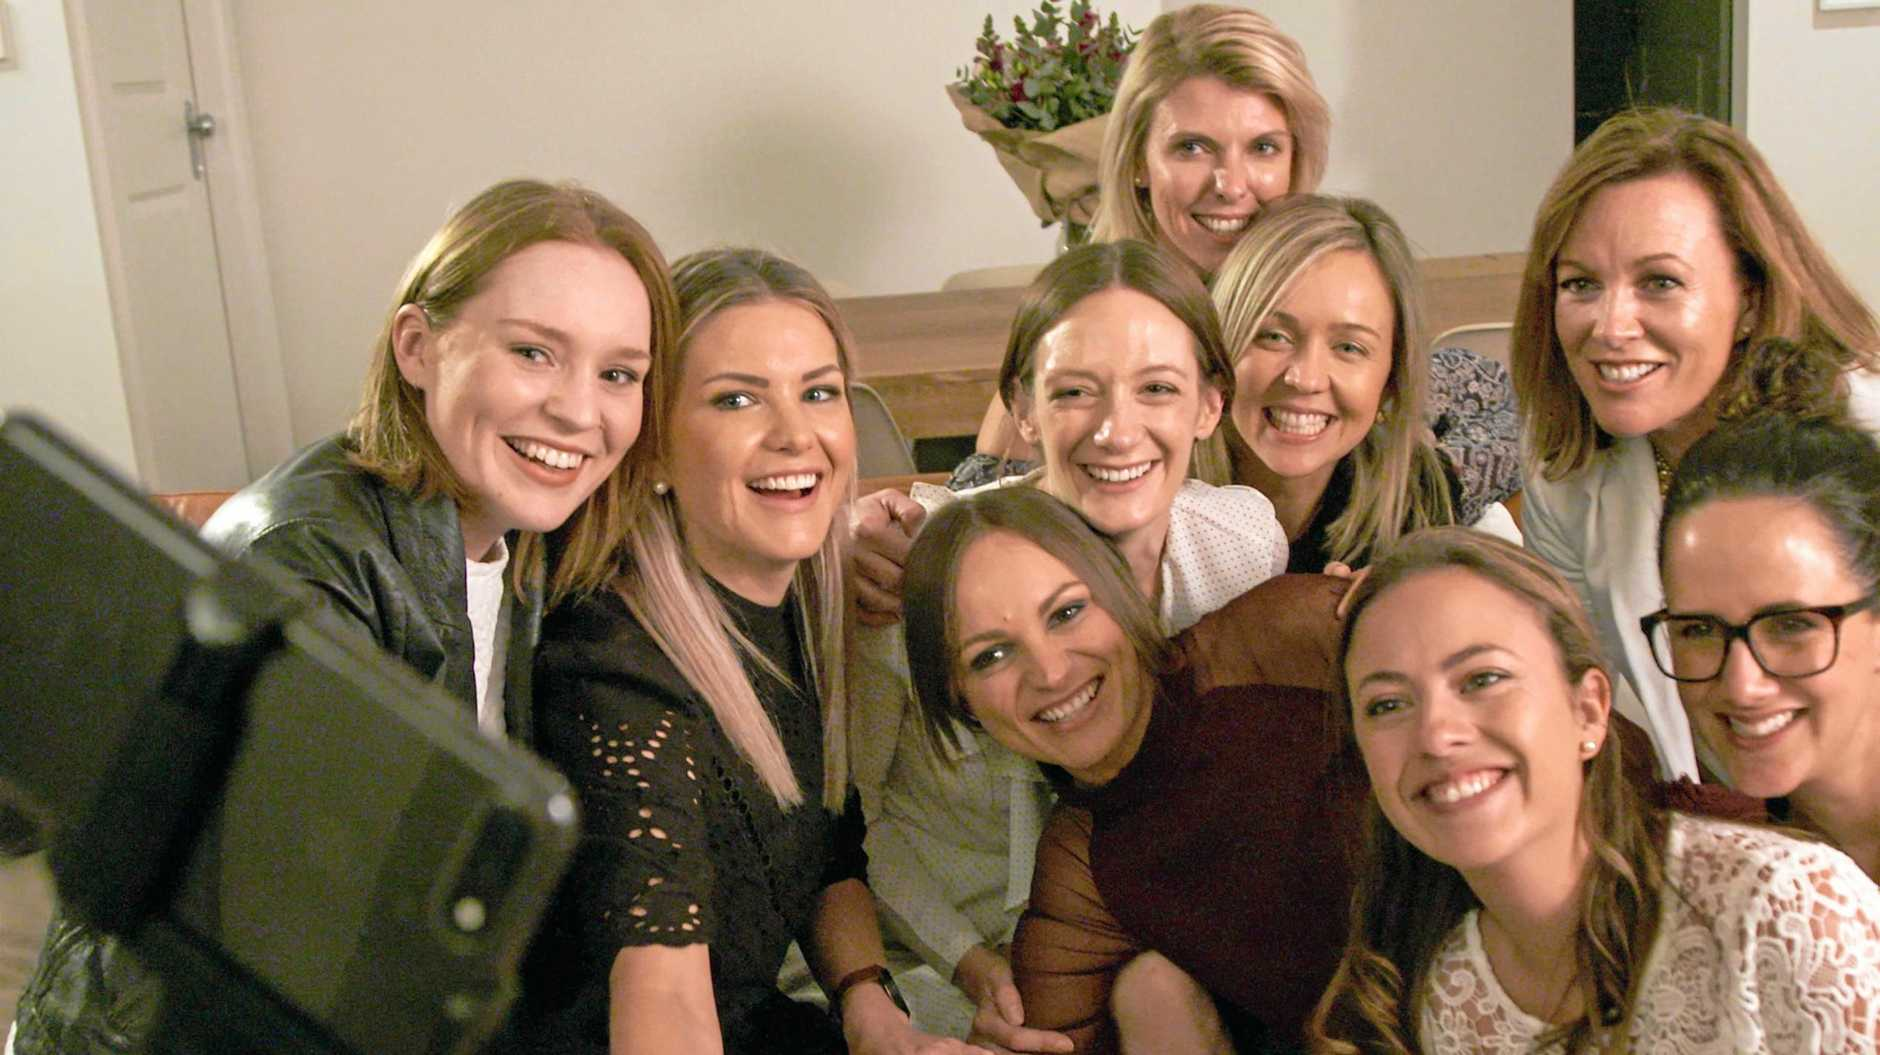 Girls Night In events raise funds and awareness of women's cancer.